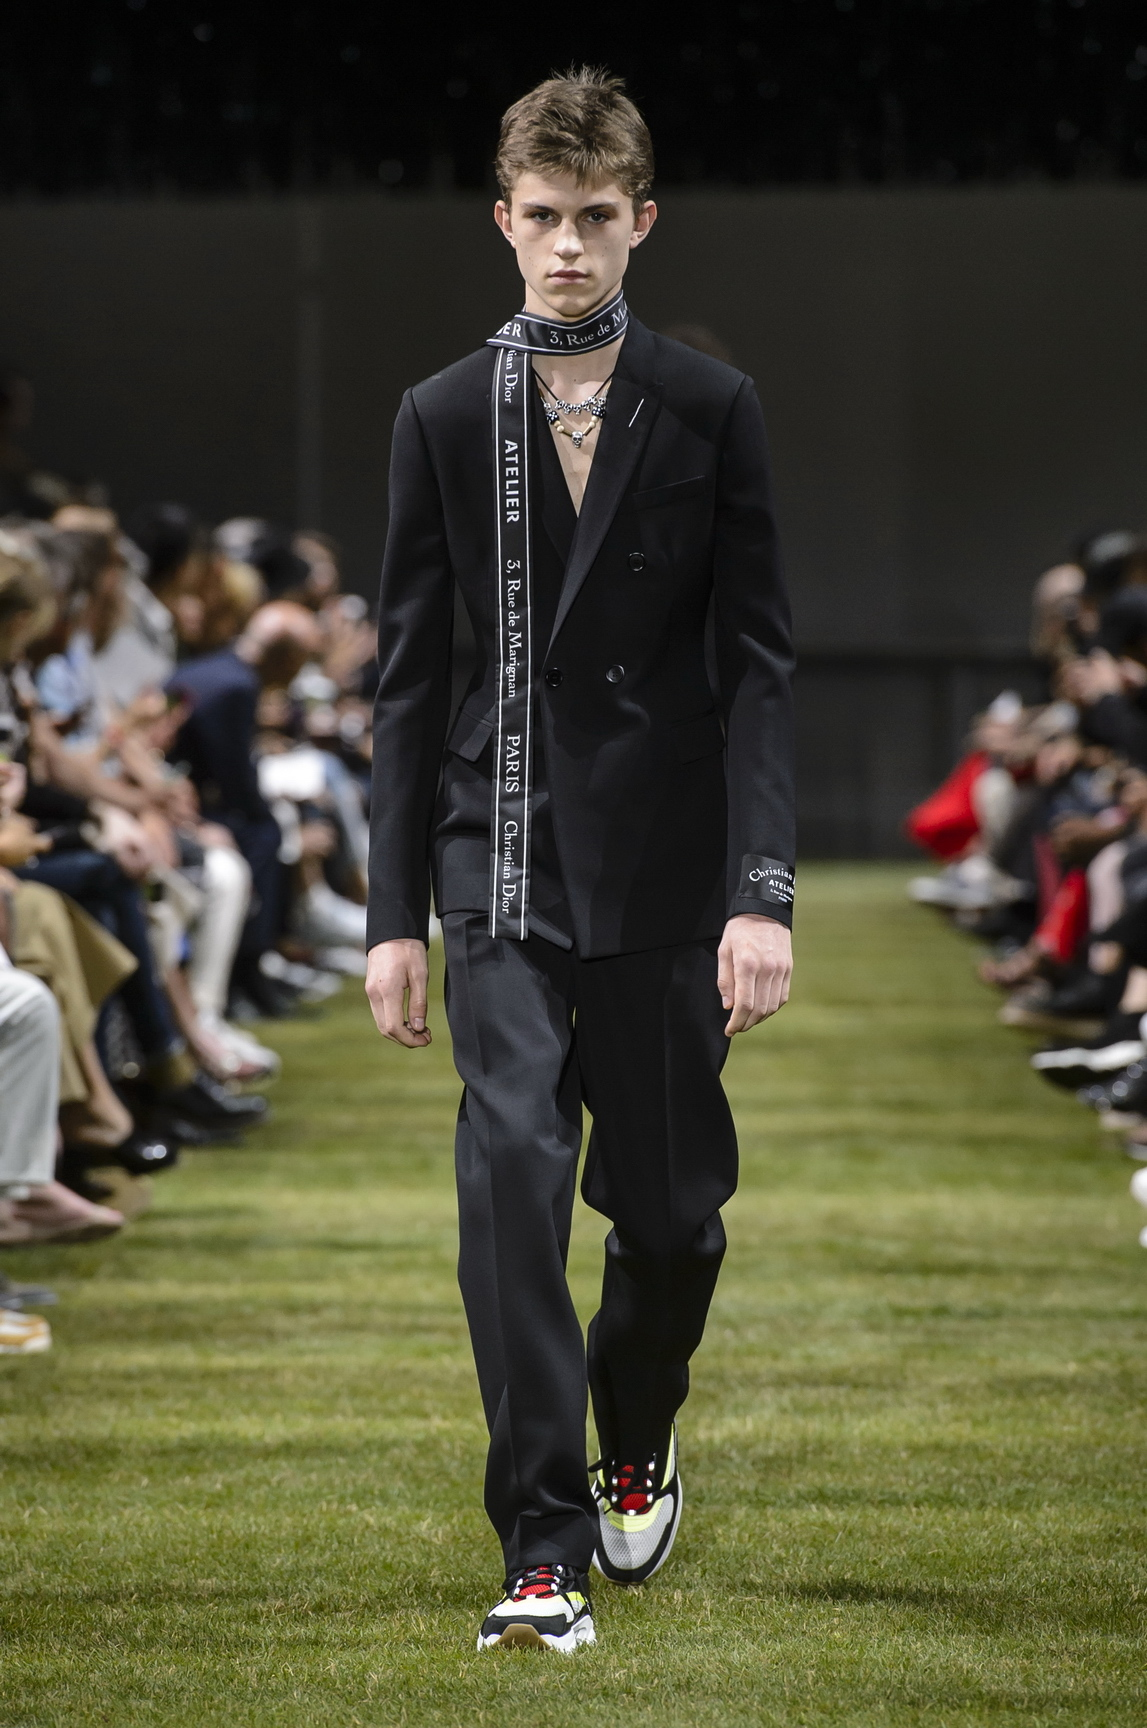 d0822820c6c4 vetements and dior homme call out for a more united europe - i-D